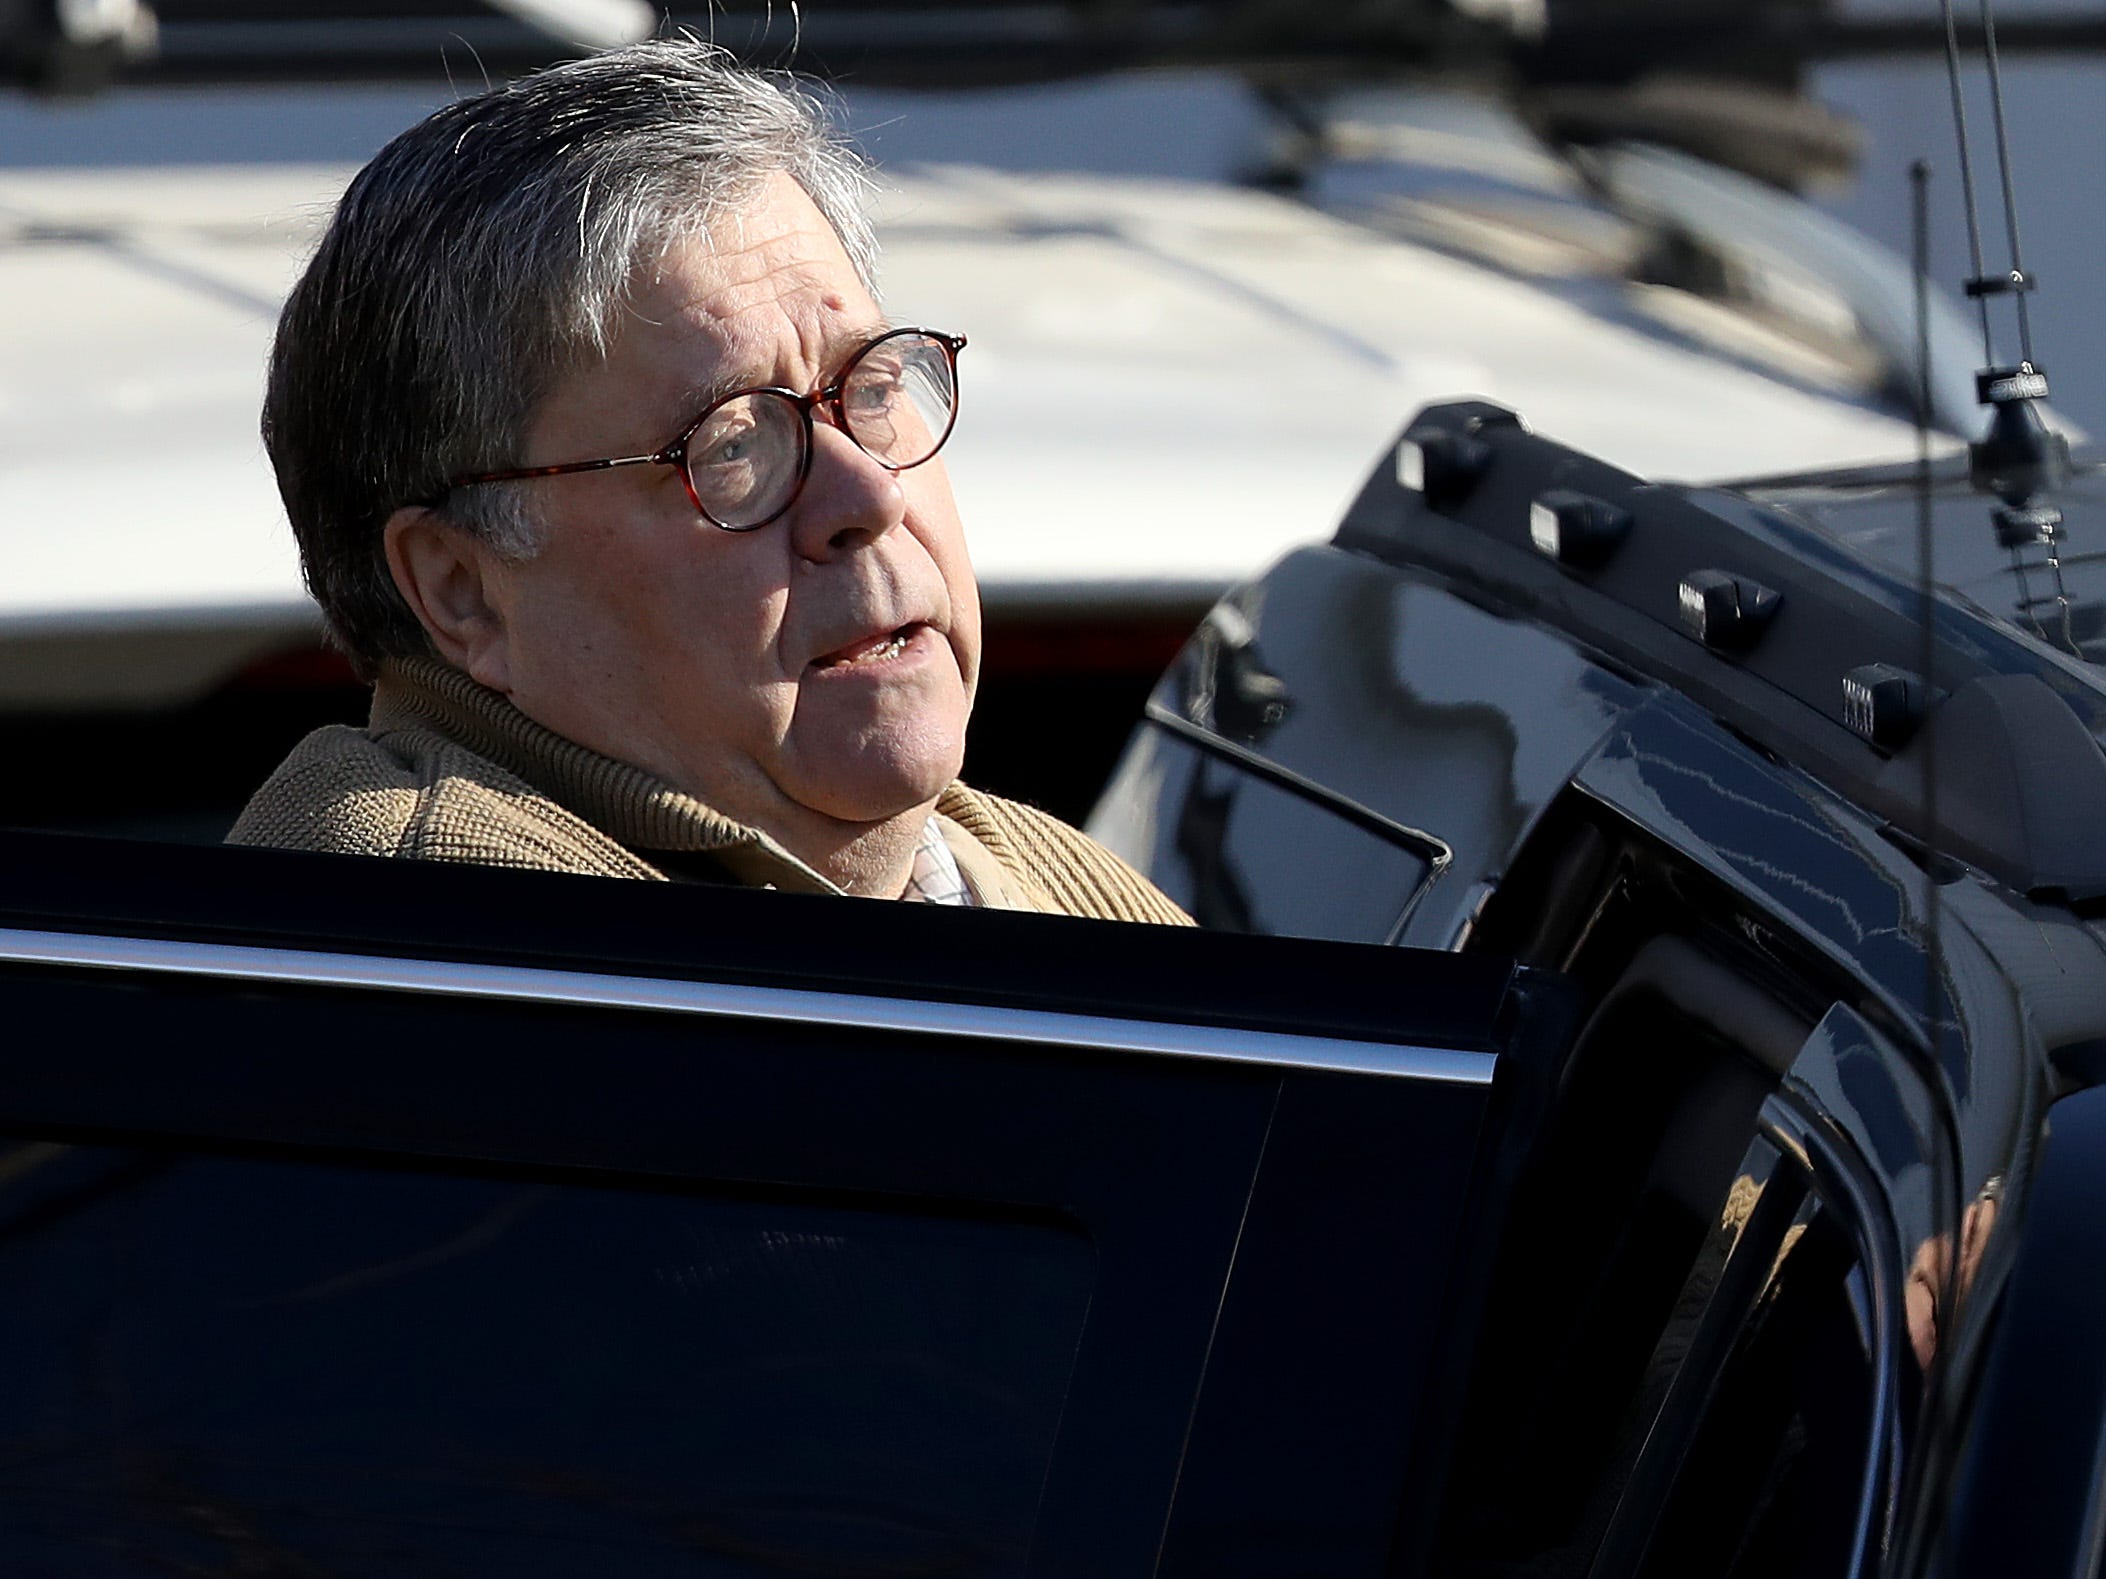 U.S. Attorney General William Barr departs his home March 23, 2019 in McLean, Virginia.  Special Counsel Robert Mueller delivered the report from his investigation into Russian interference in the 2016 presidential election to Barr yesterday and Barr is expected to brief members of Congress on the report this weekend.